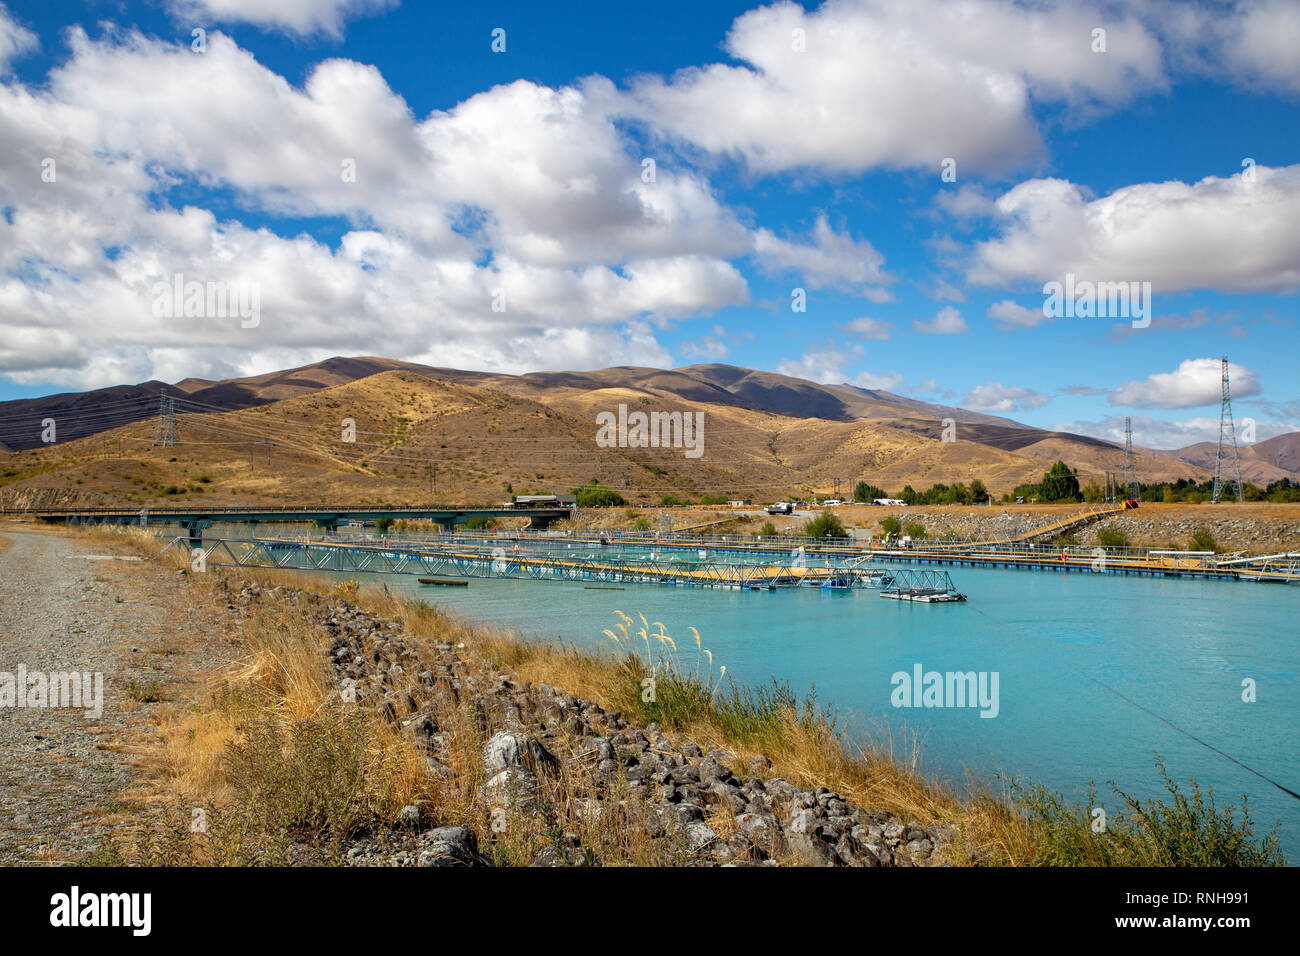 A salmon farm in one of the canals on the outskirts of Twizel, Waitaki Valley, New Zealand - Stock Image